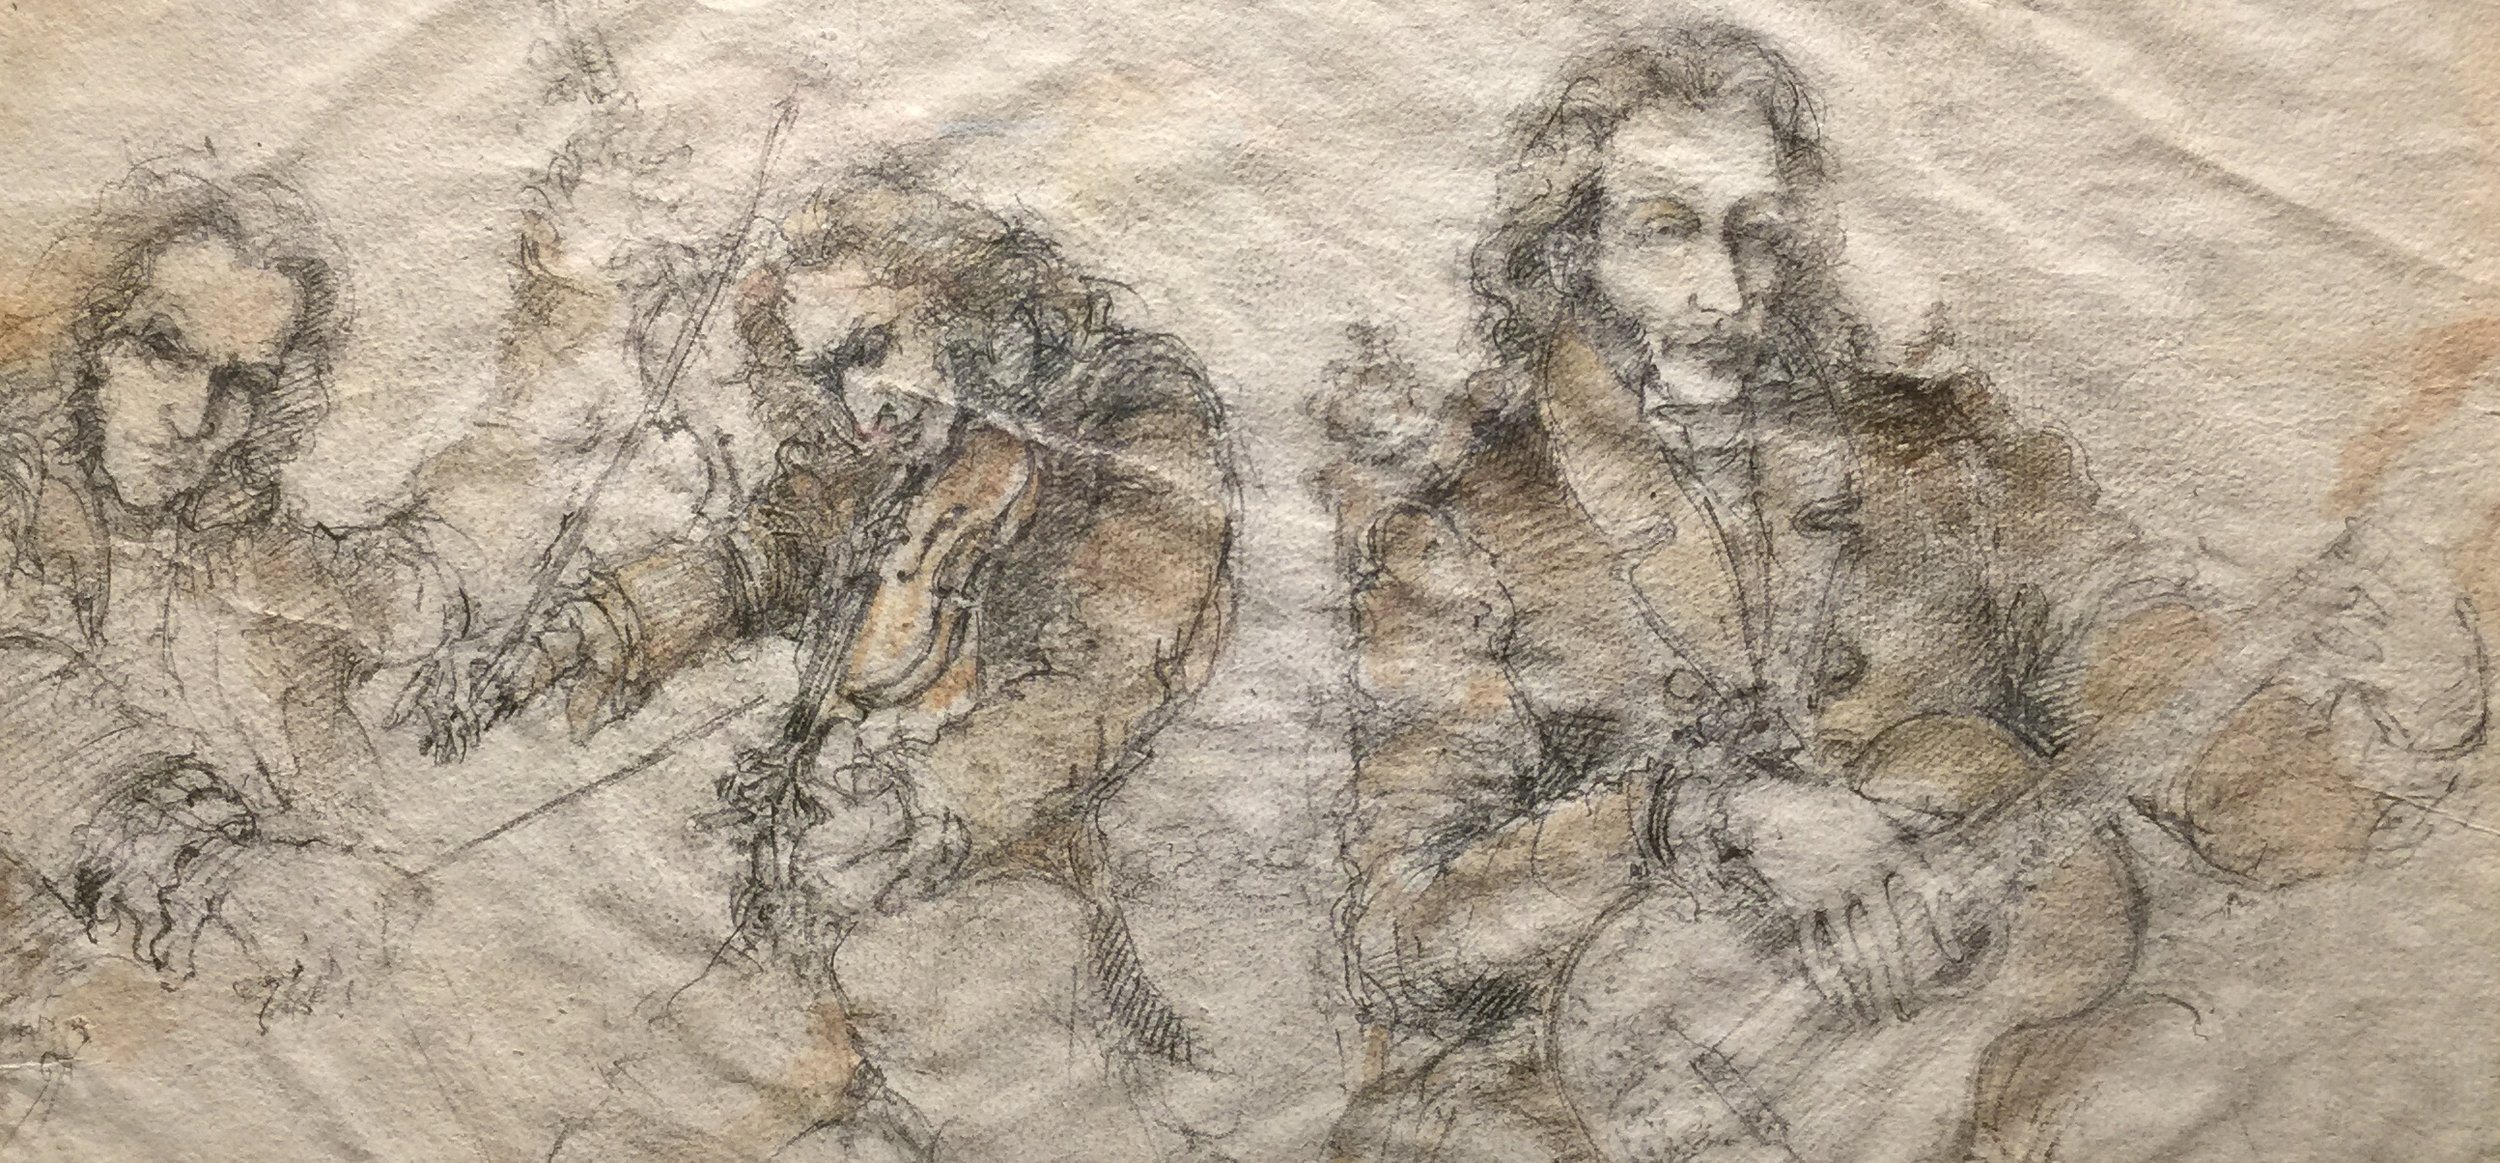 Paganini - anonymous drawing c. 1820, from the Palazzo Doria-Tursi, Genoa (photo RYC)